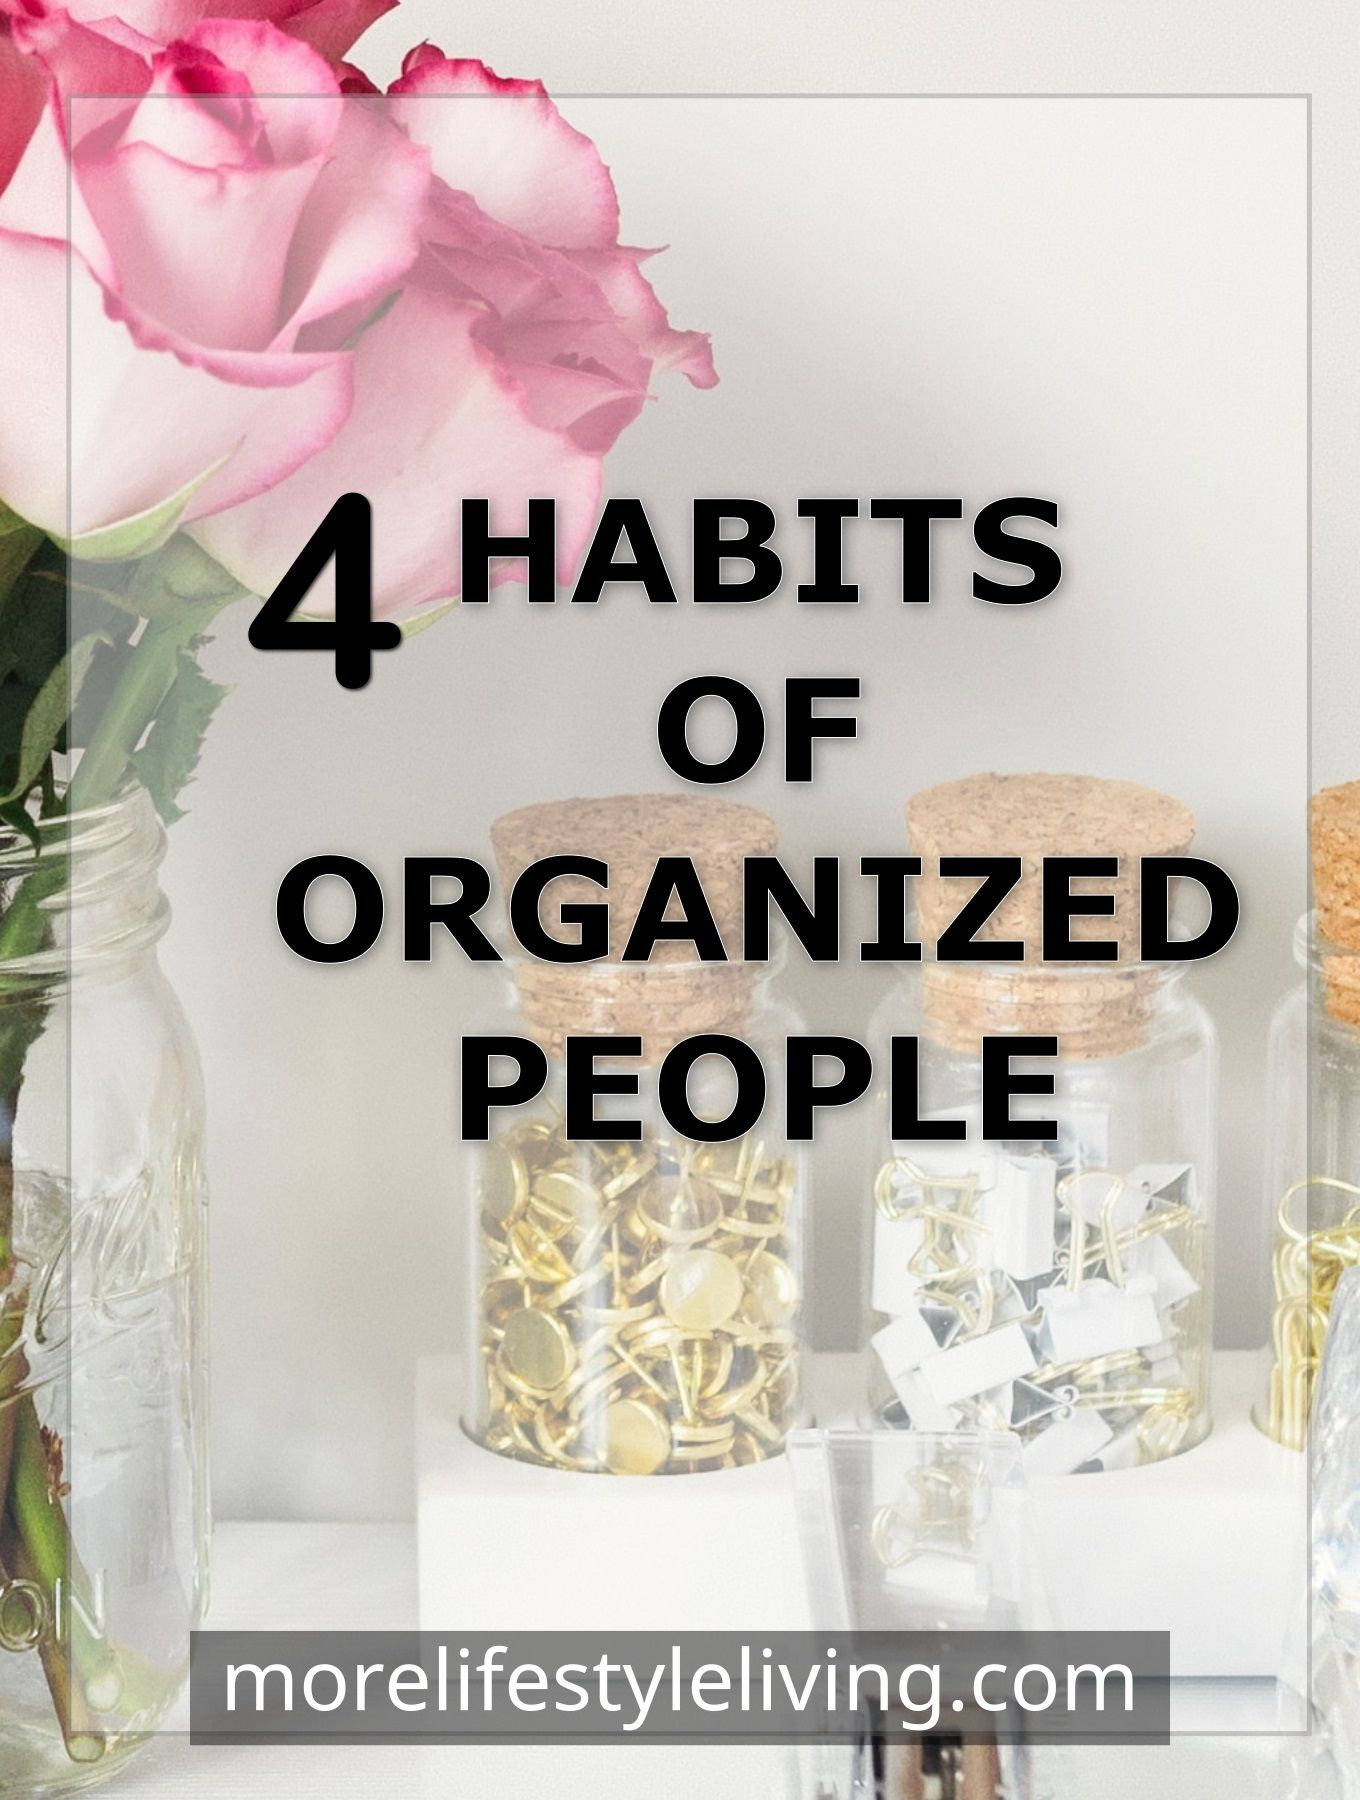 4 habits of organized people in their life work and play! Discover what it takes to be organized in all areas of life. #morelifestyleliving #organization #organize